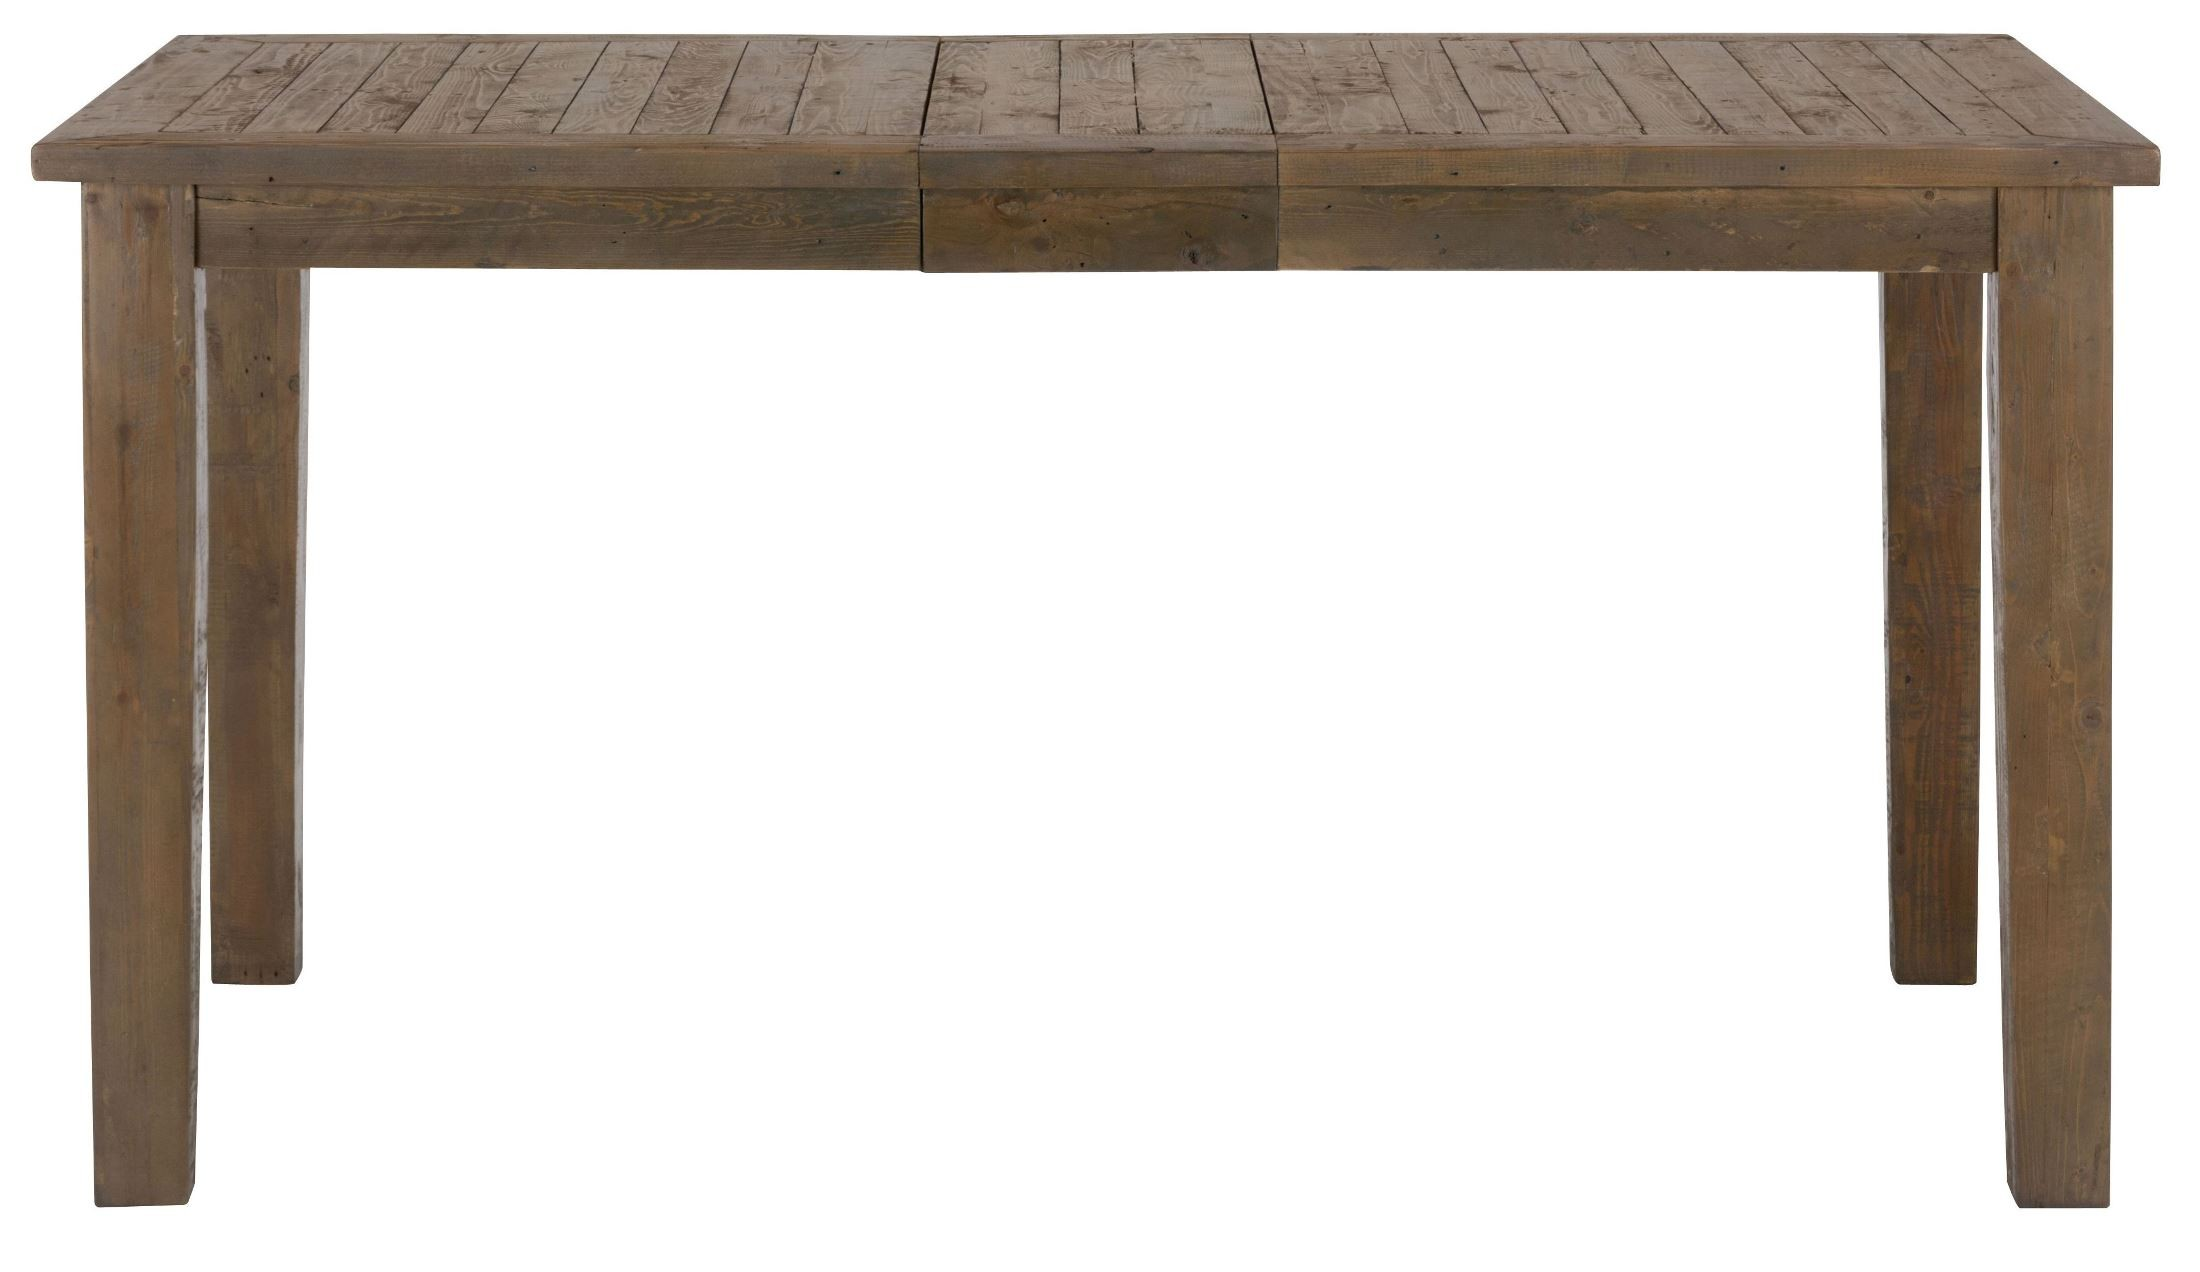 Slater Mill Pine Counter Height Dining Table 941 42 Jofran